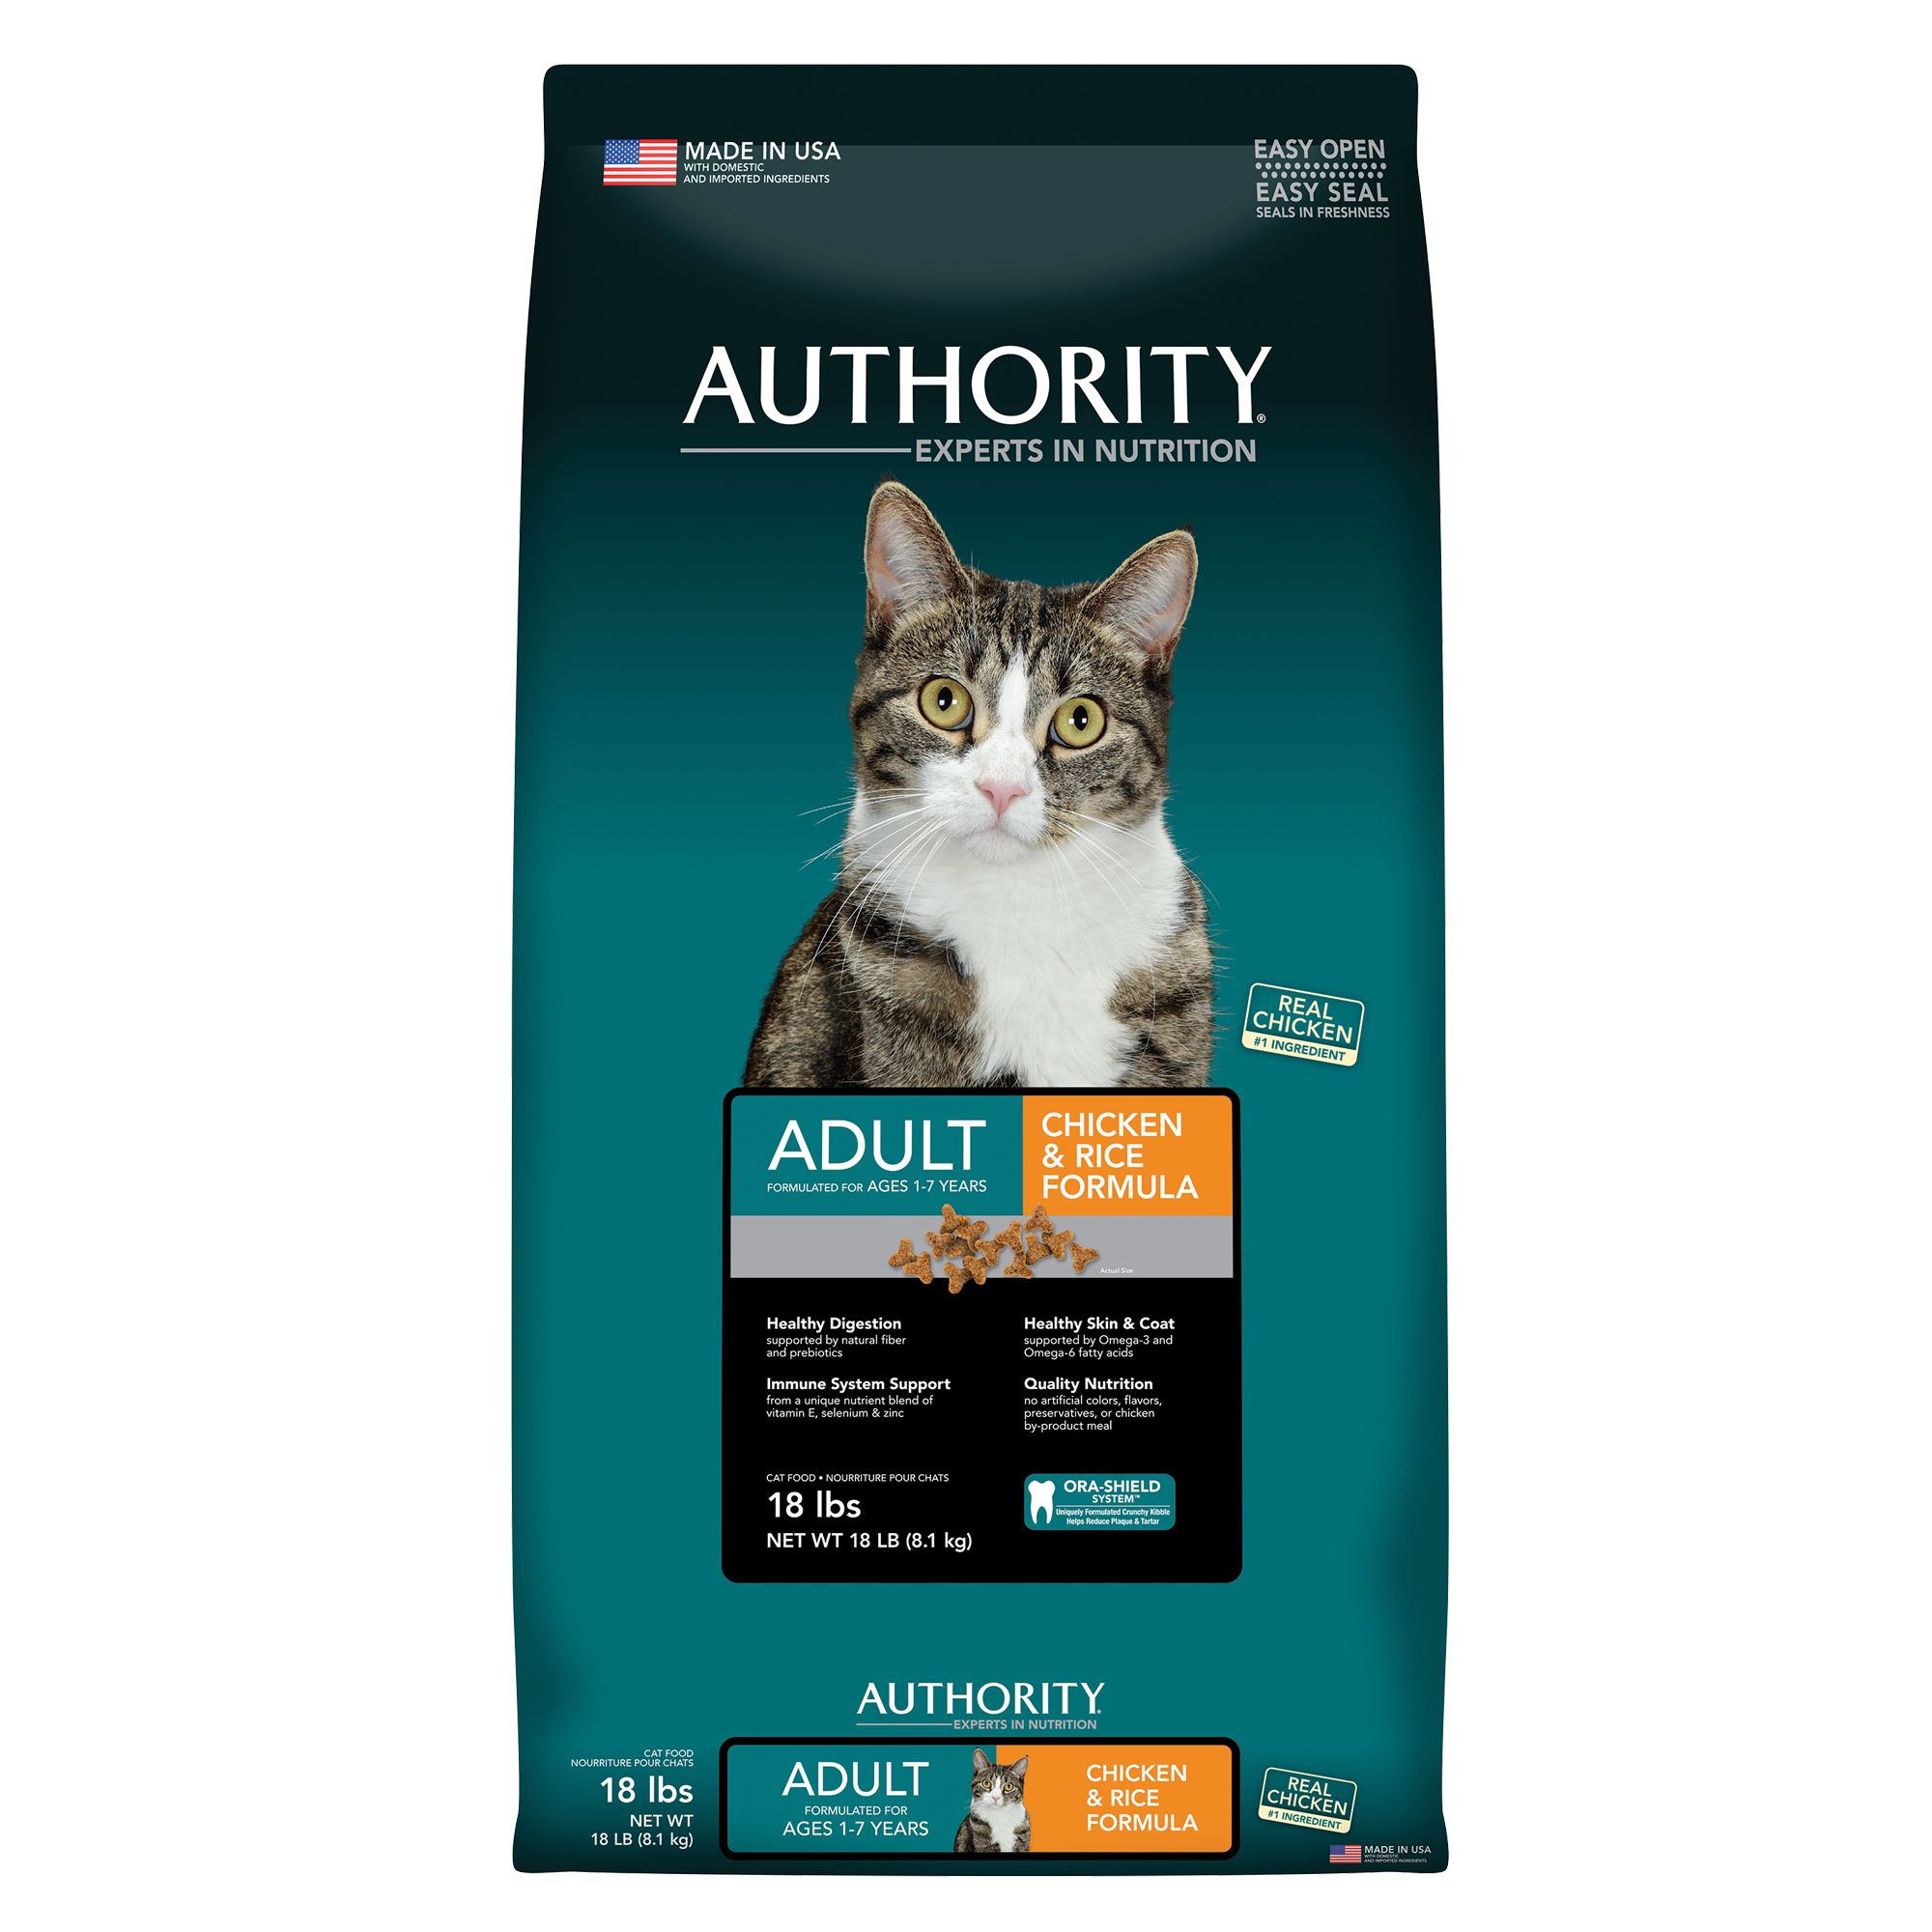 Authority Adult Cat Food Chicken And Rice Size 18 Lb